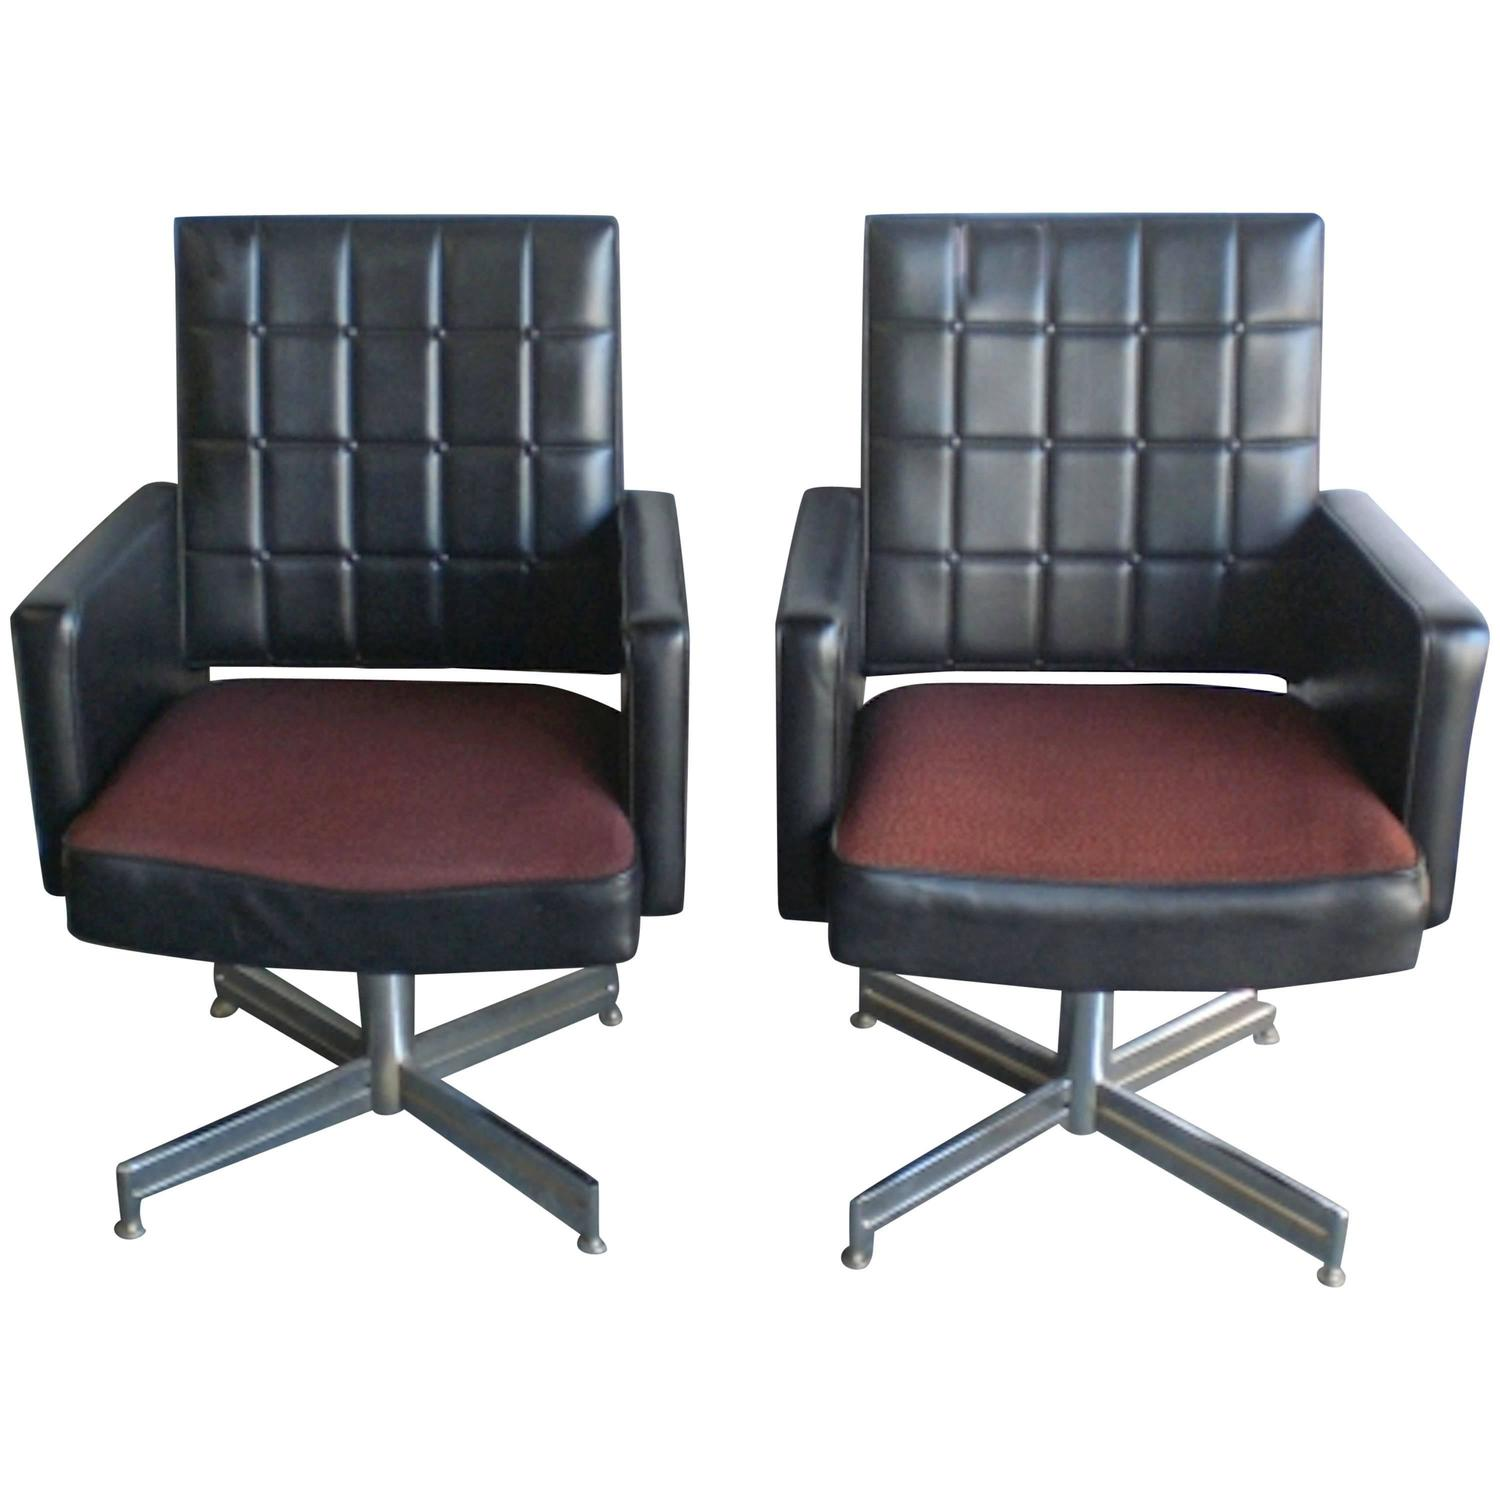 office chair toronto lounge chairs for pool vintage modern by nightingale single